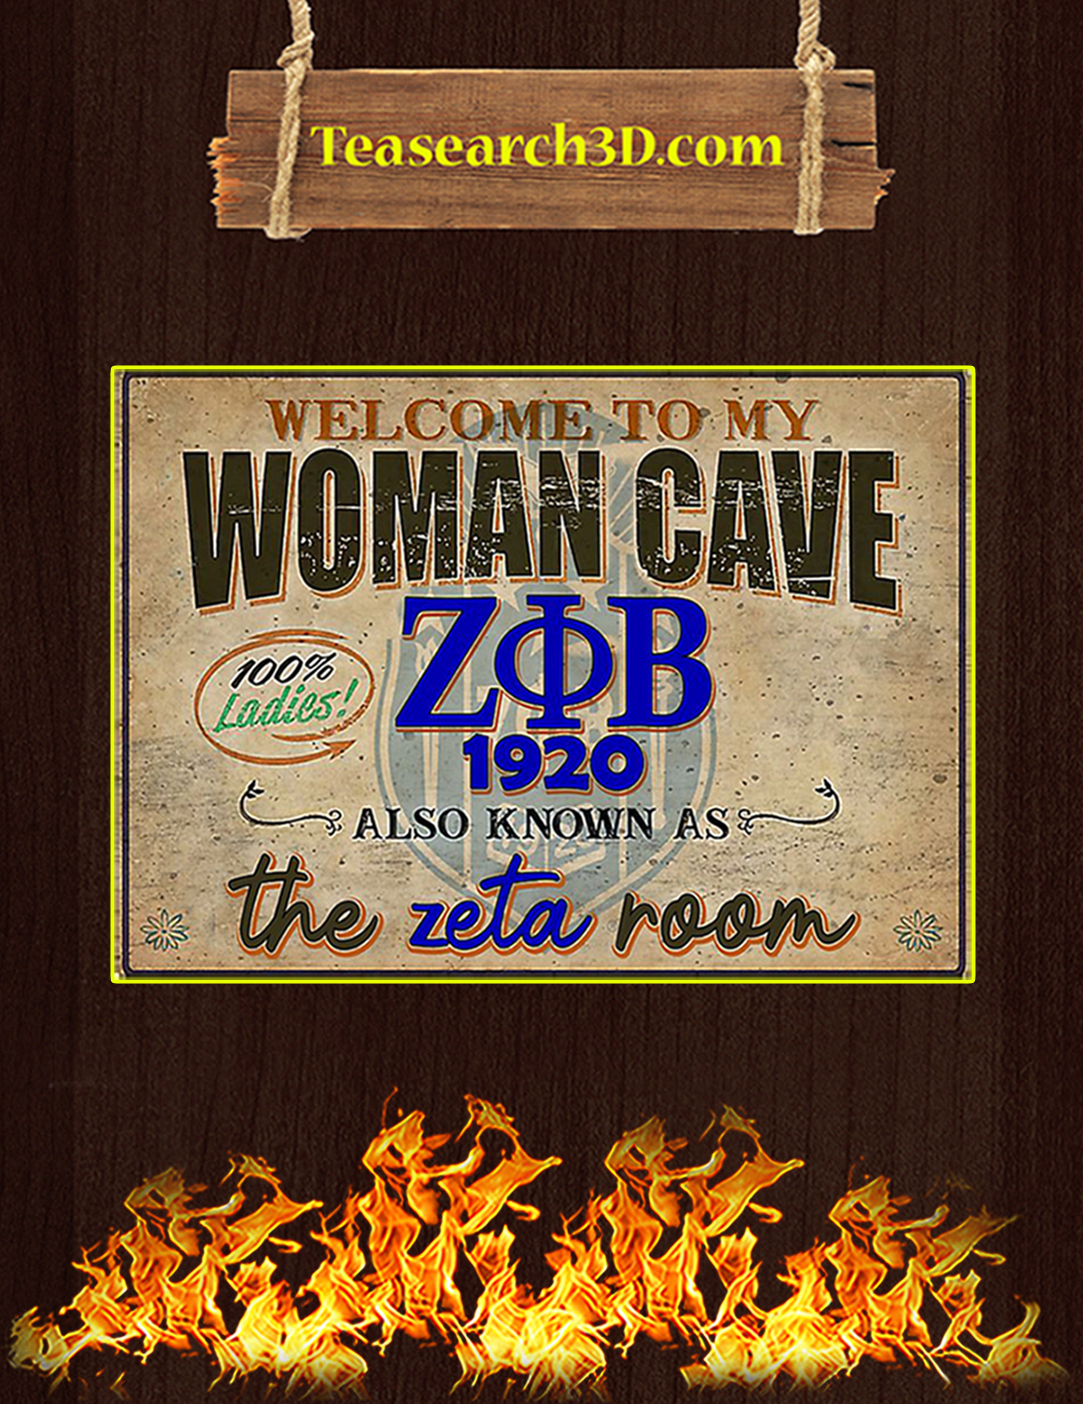 Welcome to my woman cave zeta phi beta 1920 poster A2